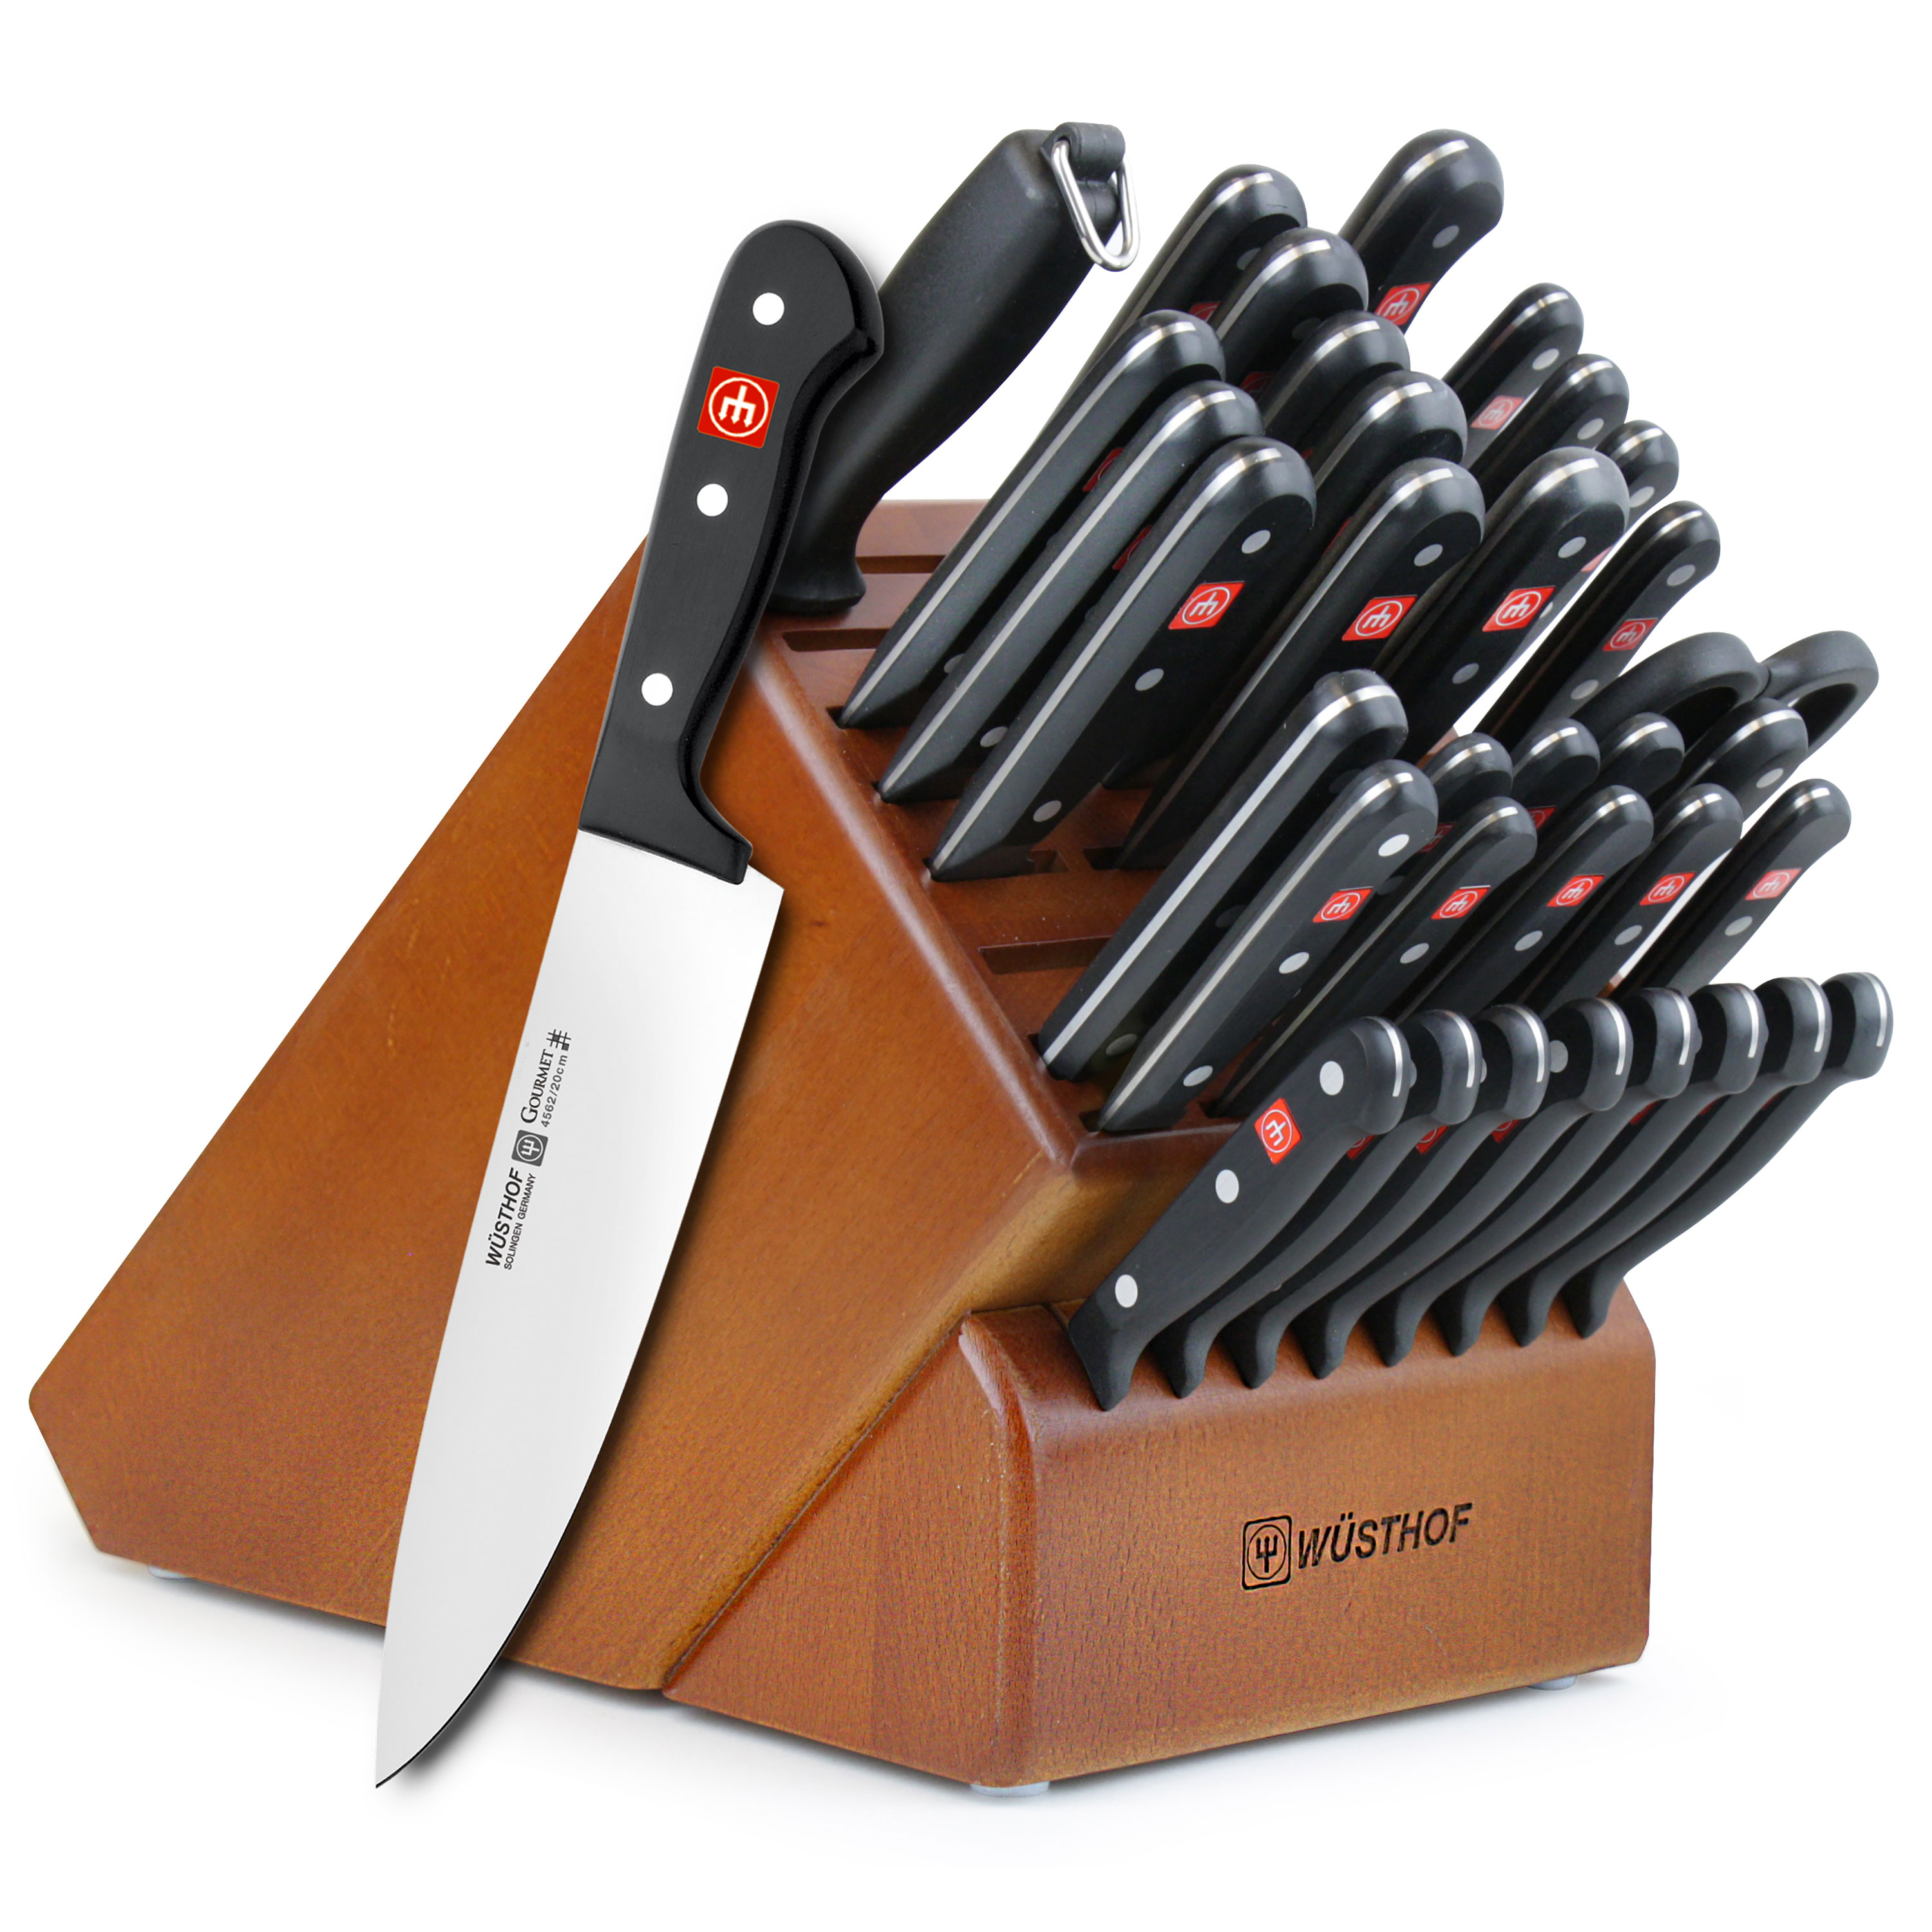 Shop for and buy cutlery and more online at Macy's. Find cutlery and more at Macy's.